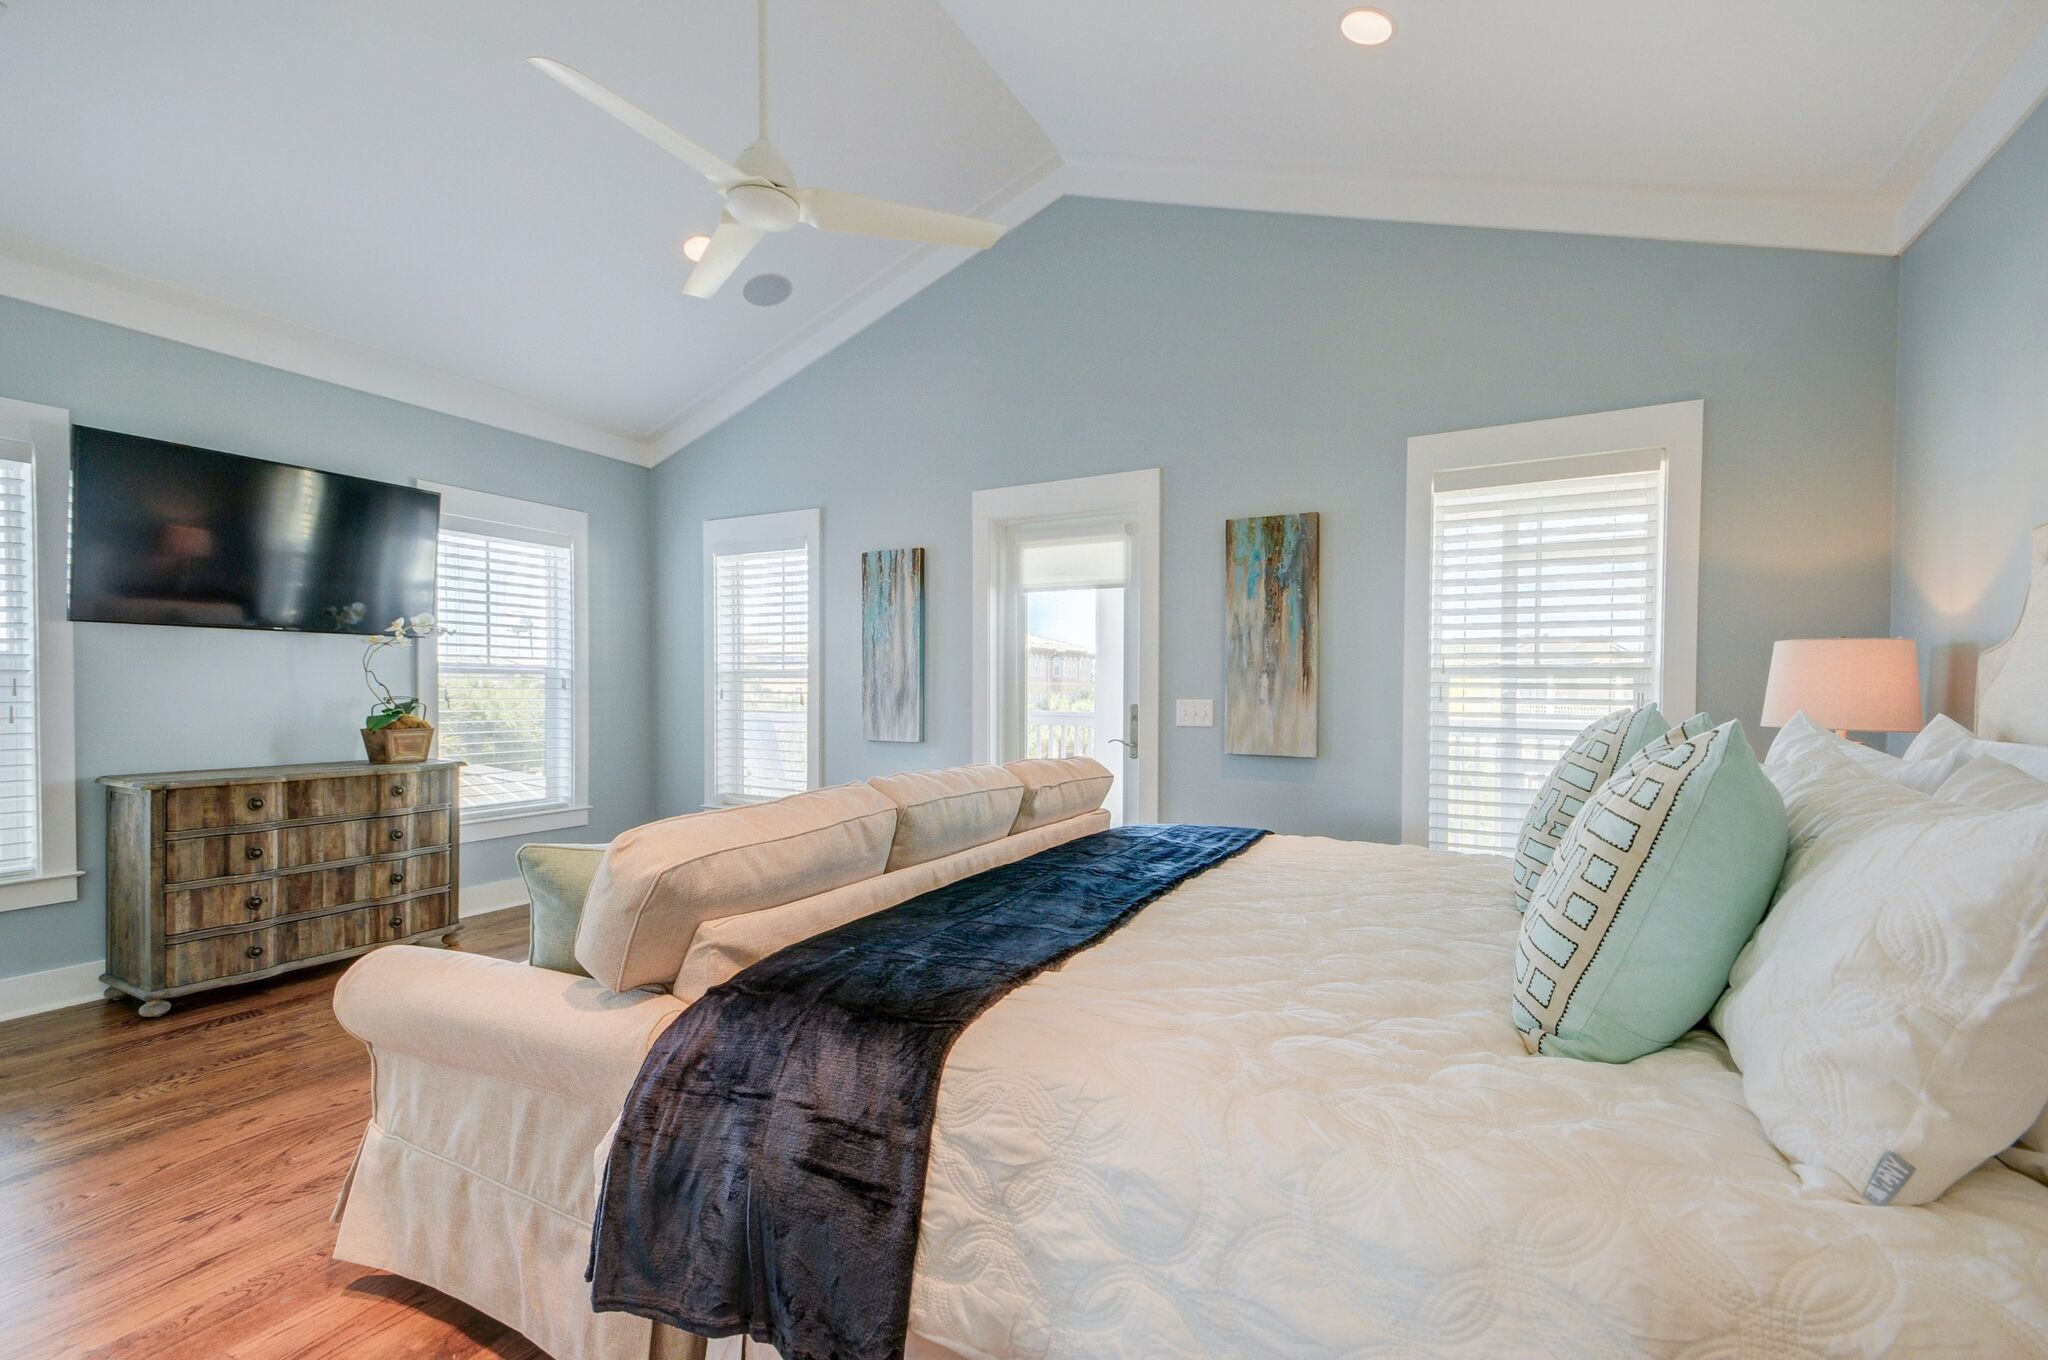 55 inch flat screen TV and couch offer private getaway space from the rest of the household in this large master suite